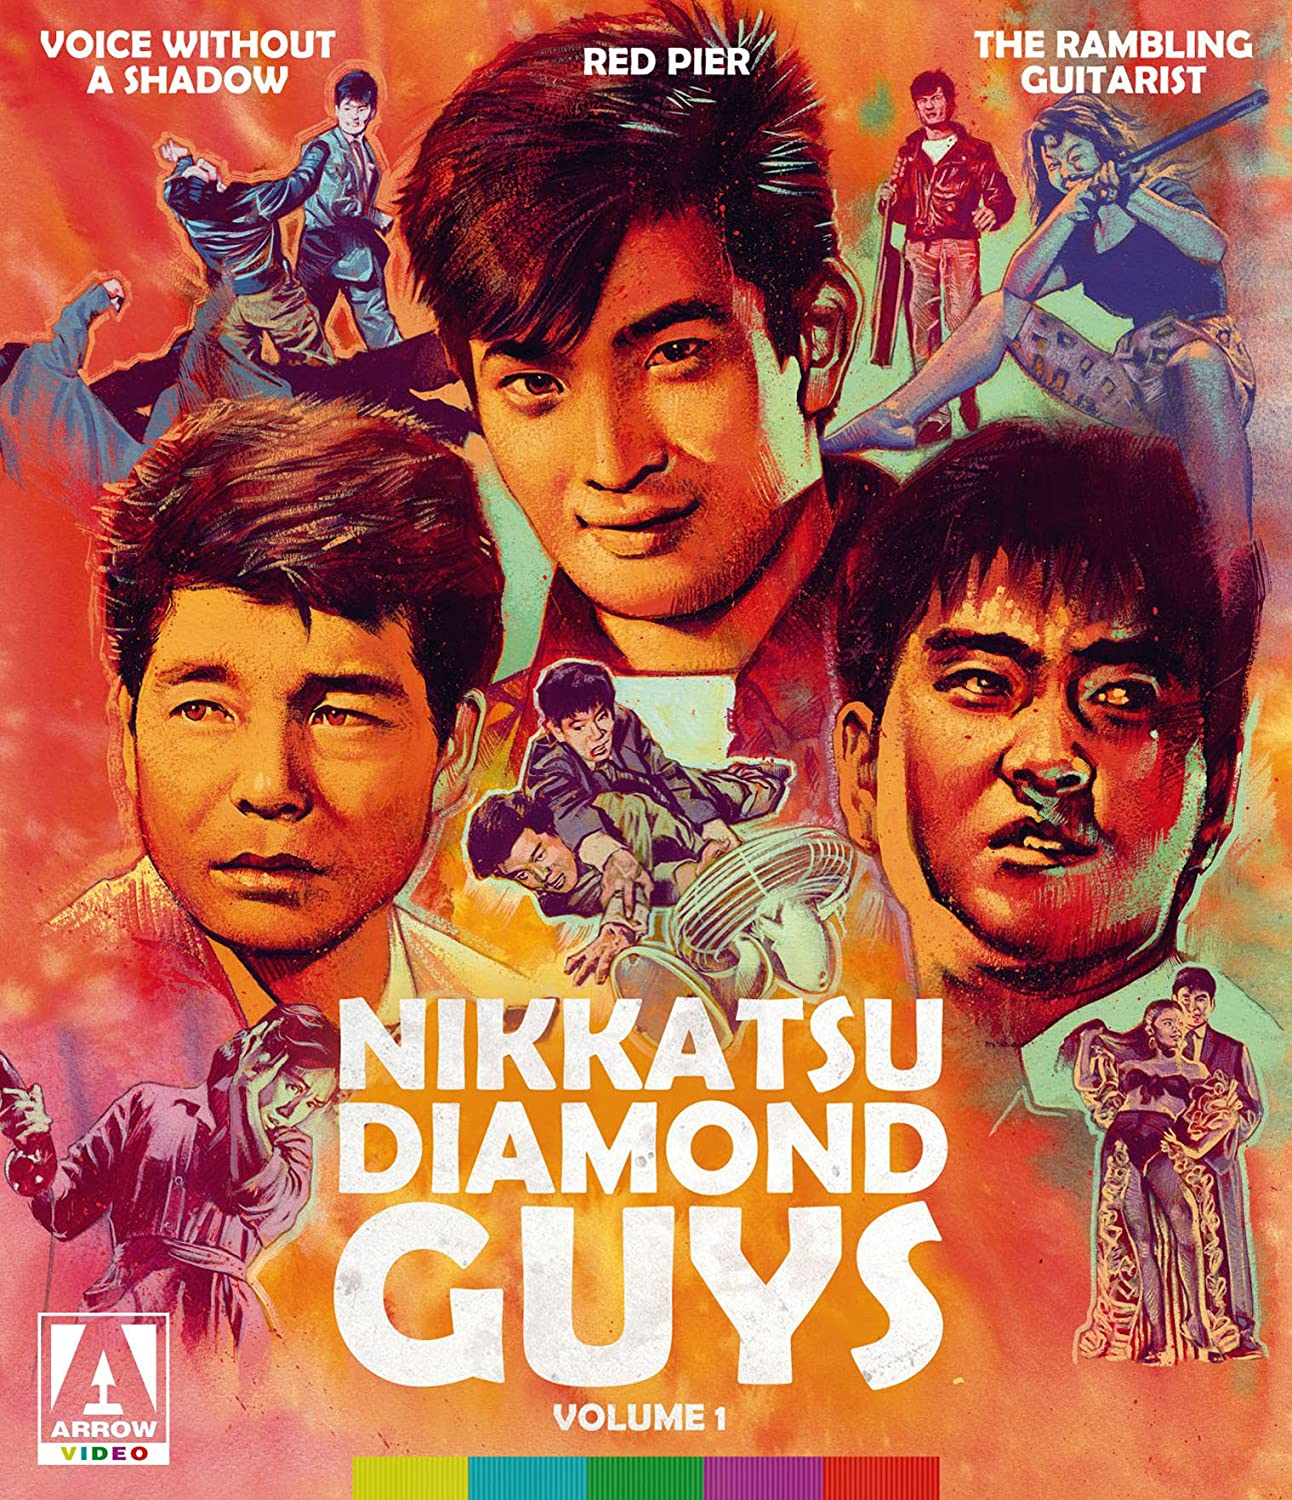 Nikkatsu Diamond Guys (Vol 1)